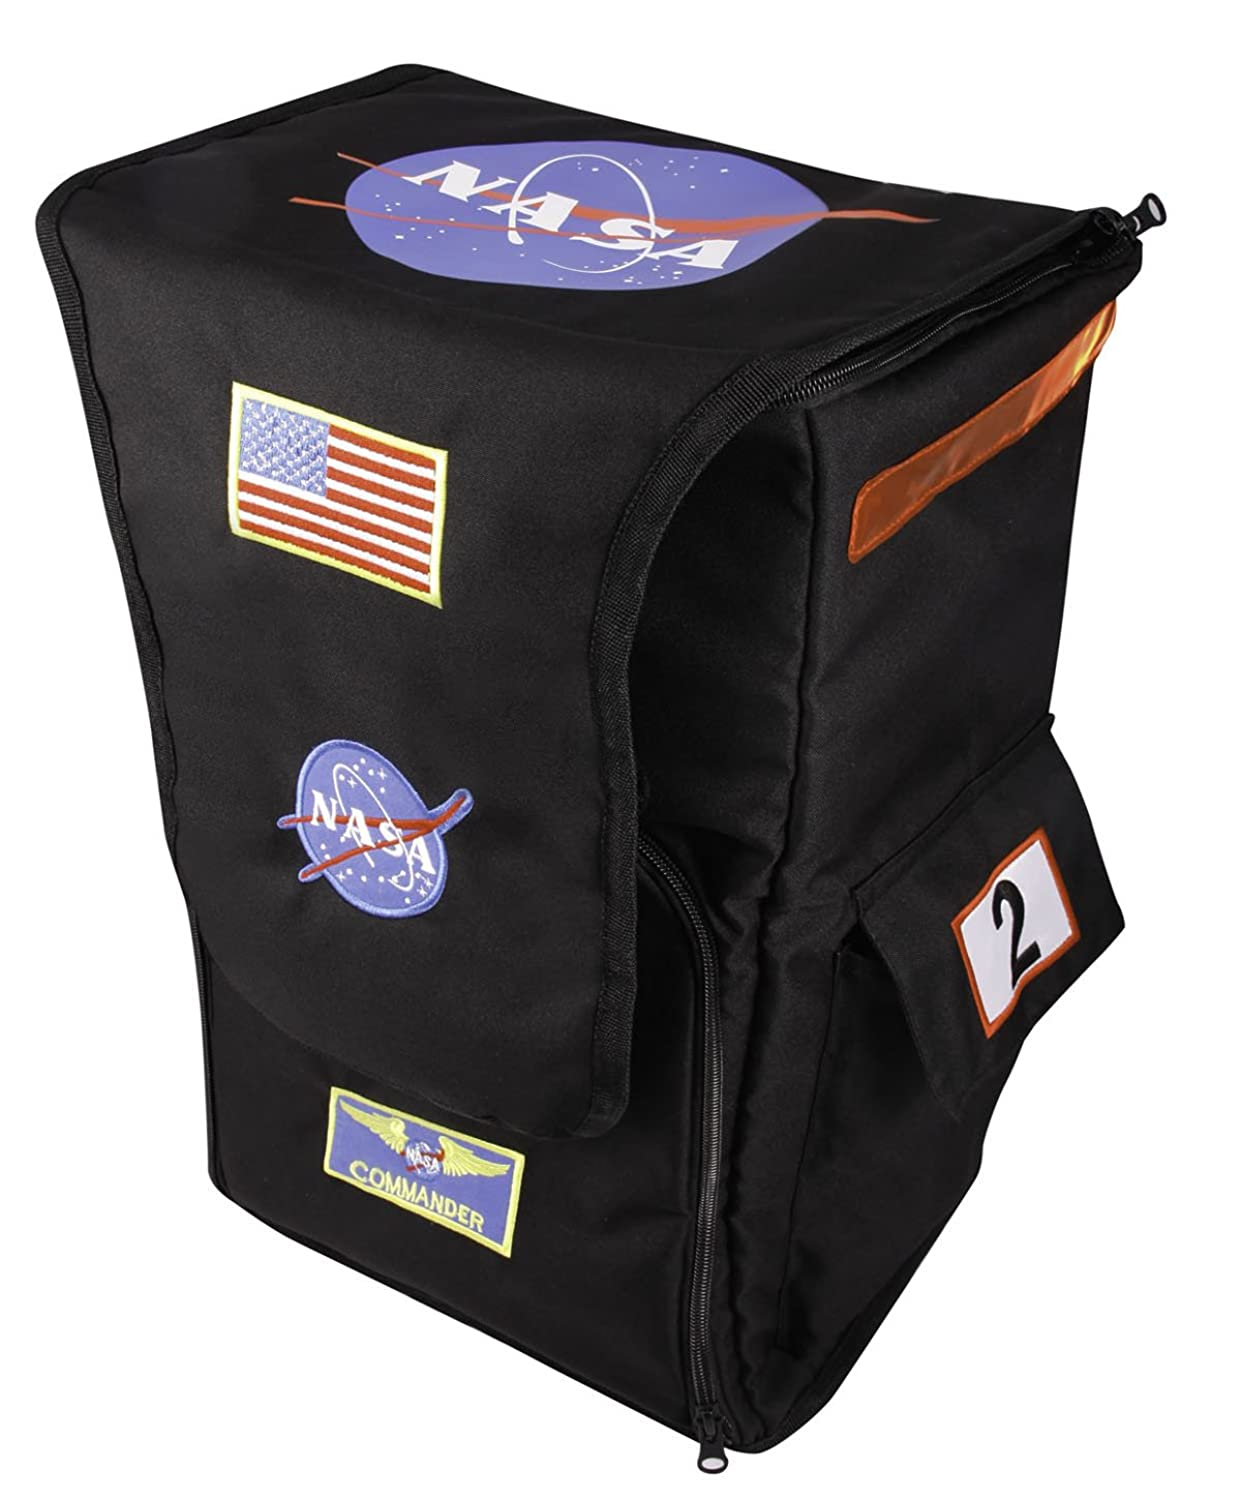 neil armstrong backpack - photo #13